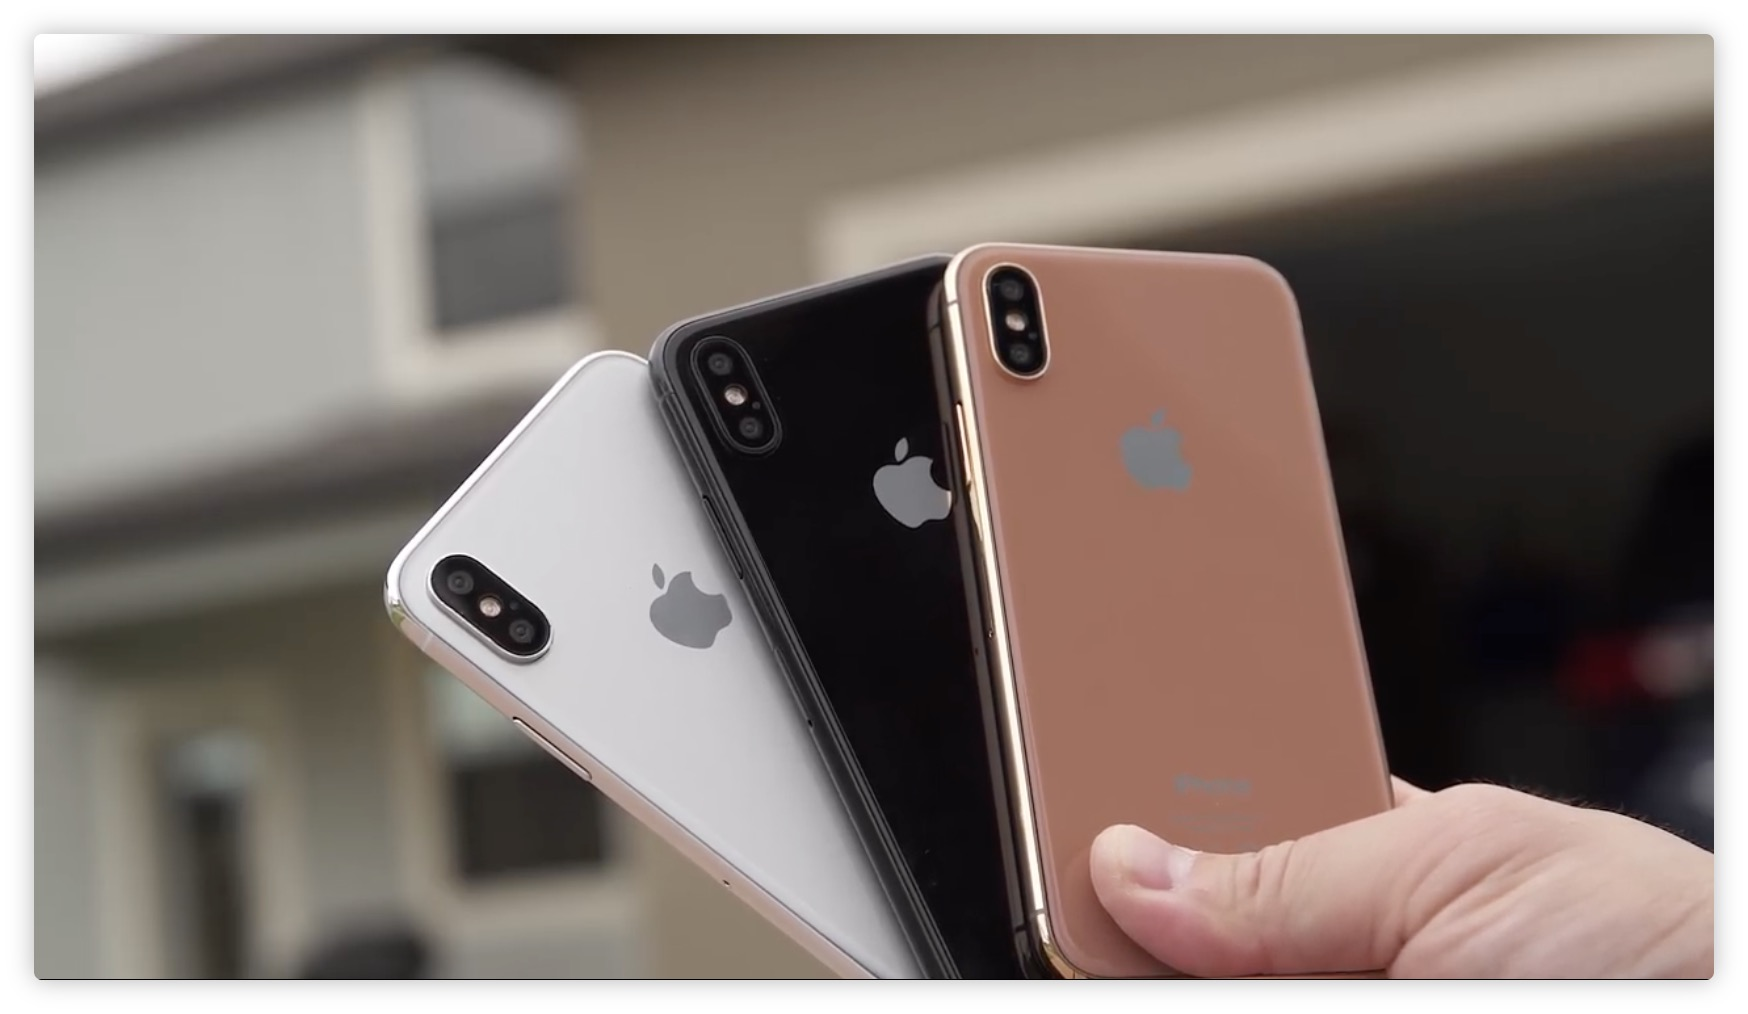 rumeur le coloris cuivr de l 39 iphone 8 serait en fait un blush gold disponible en 2. Black Bedroom Furniture Sets. Home Design Ideas